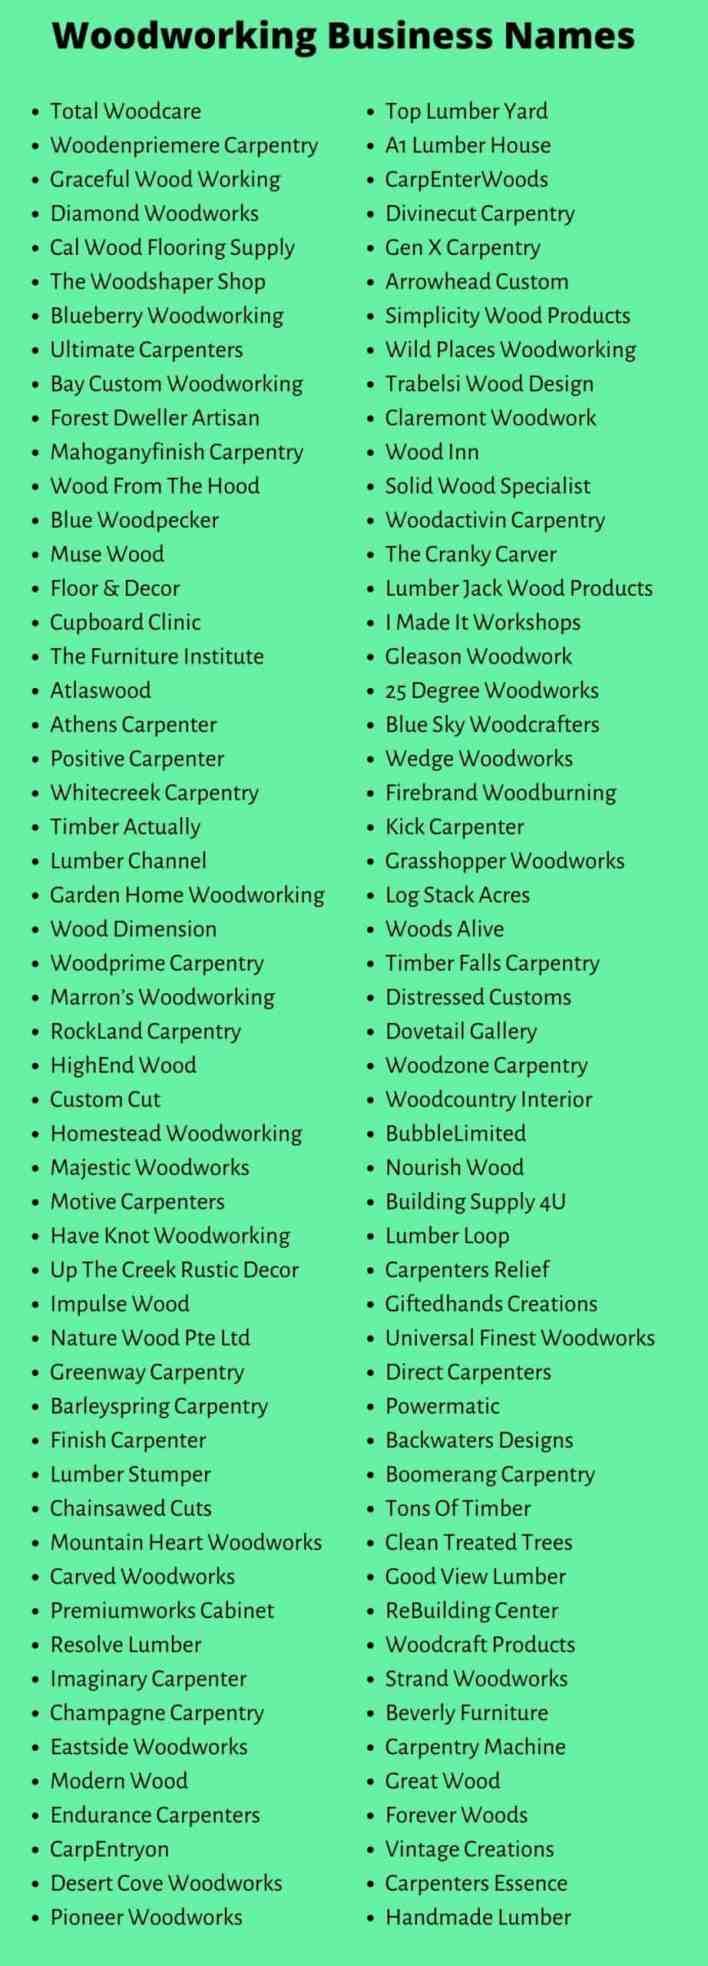 Woodworking Business Names